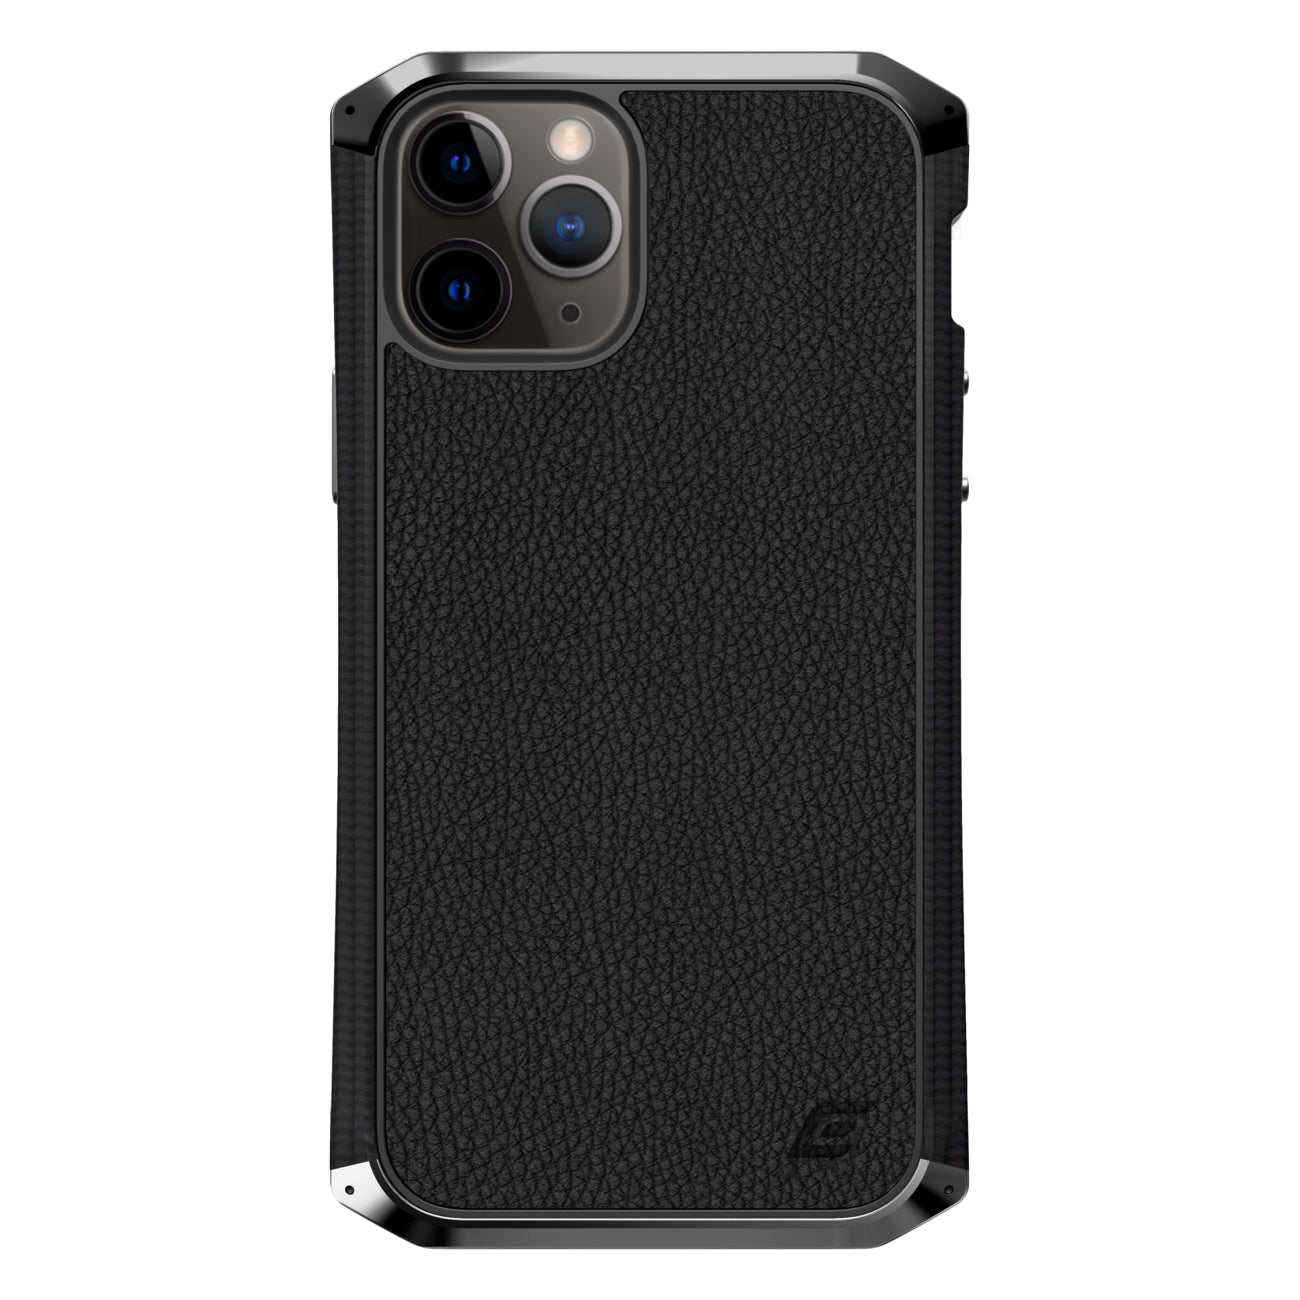 Element Case Ronin Premium Case For iPhone 11 Pro Max - Black